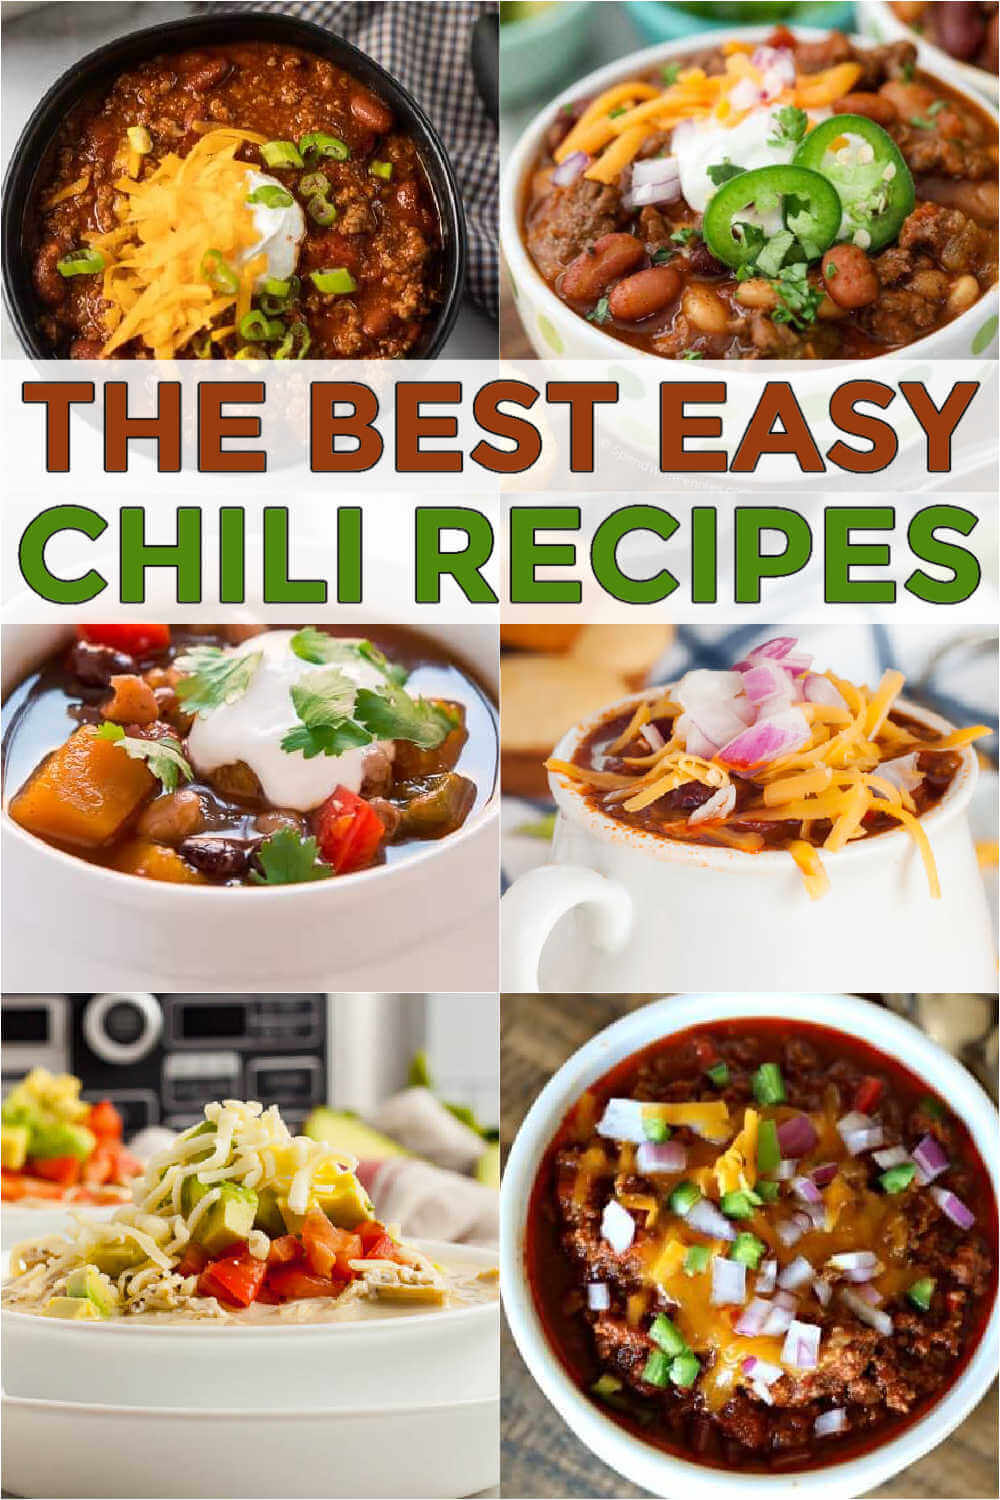 These are some of my favorite easy chili recipes. Some are with beans, some are with no beans, some are made in a crockpot and some on the stovetop. These are the best chili recipes that you'll ever try. You are going to love the best ever chili recipes! #eatingonadime #chilirecipes #easychilirecipes #comfortfoods